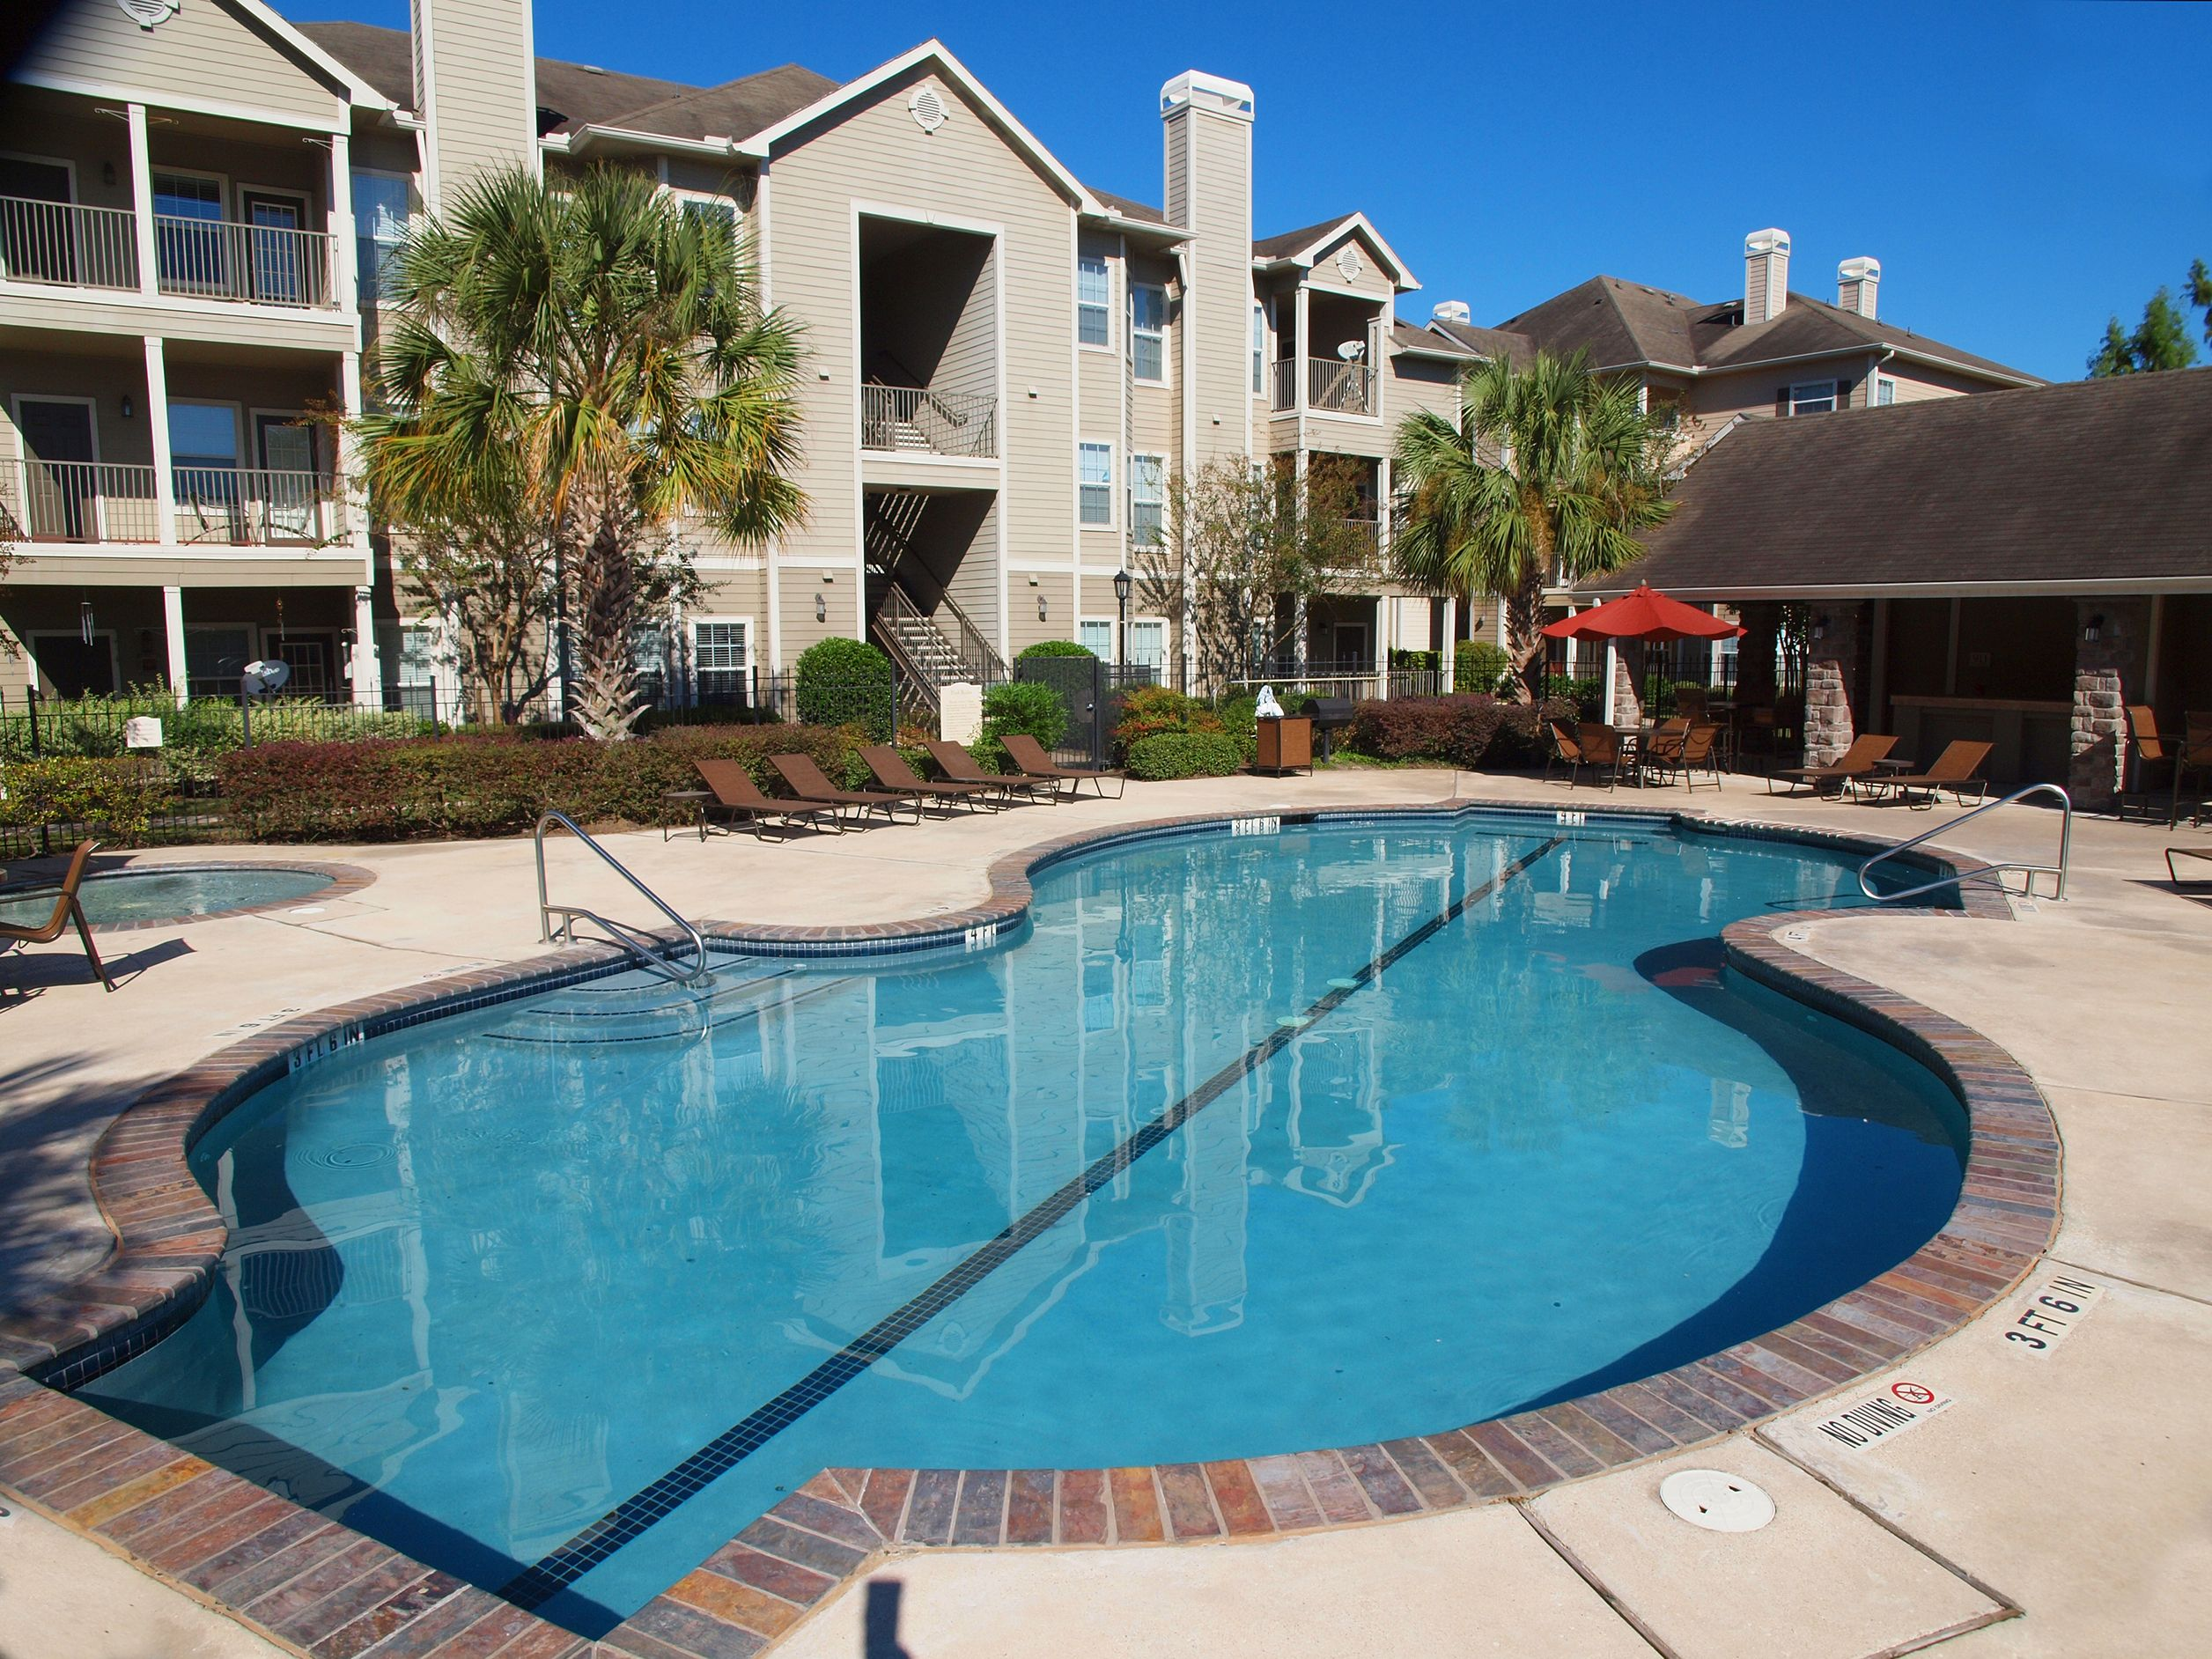 Pin By Hills Properties On The Reserve By The Lake Apartments Houston Tx Houston Apartment Apartment Communities Lake